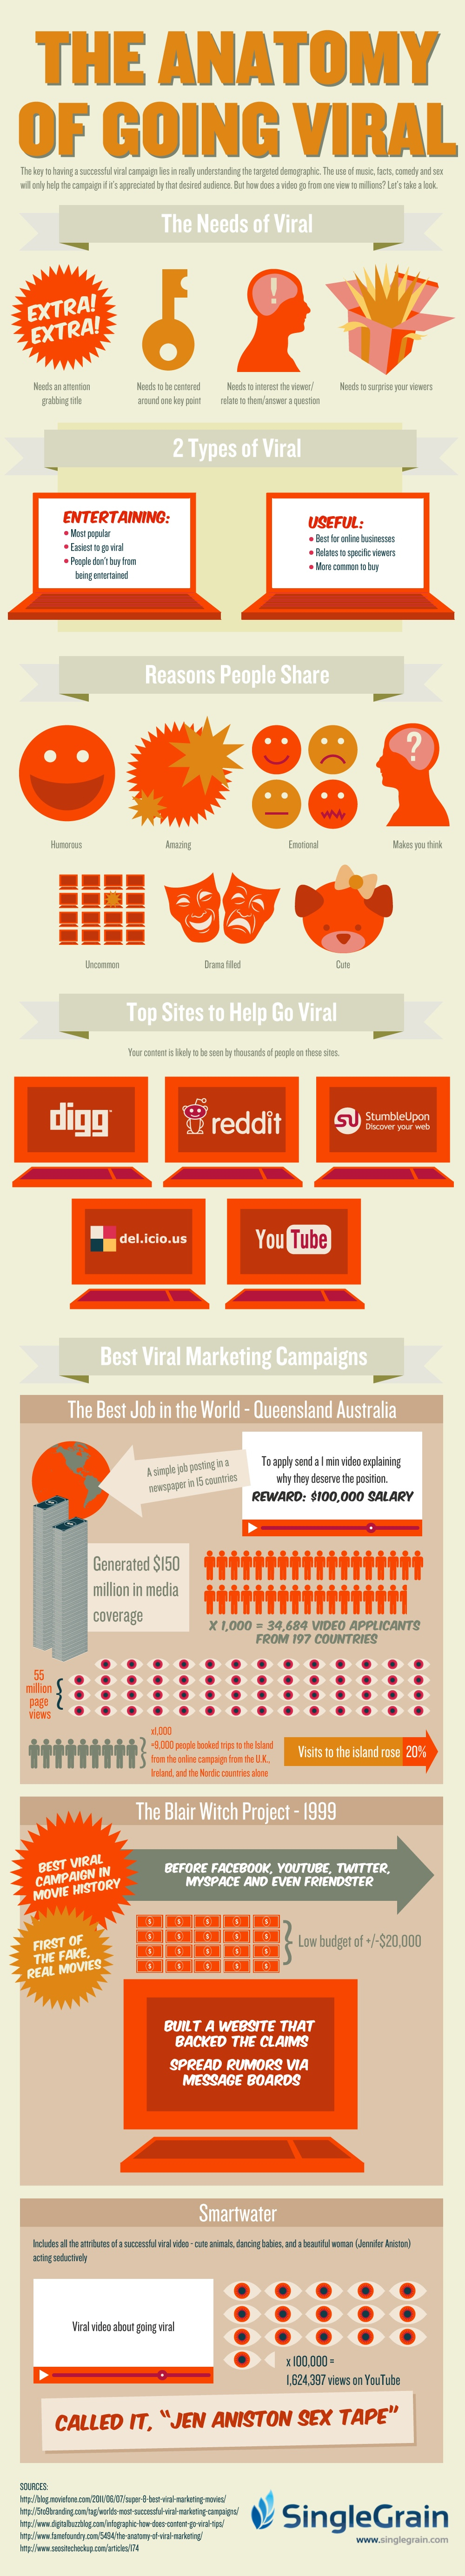 The Anatomy of going viral [infographic]